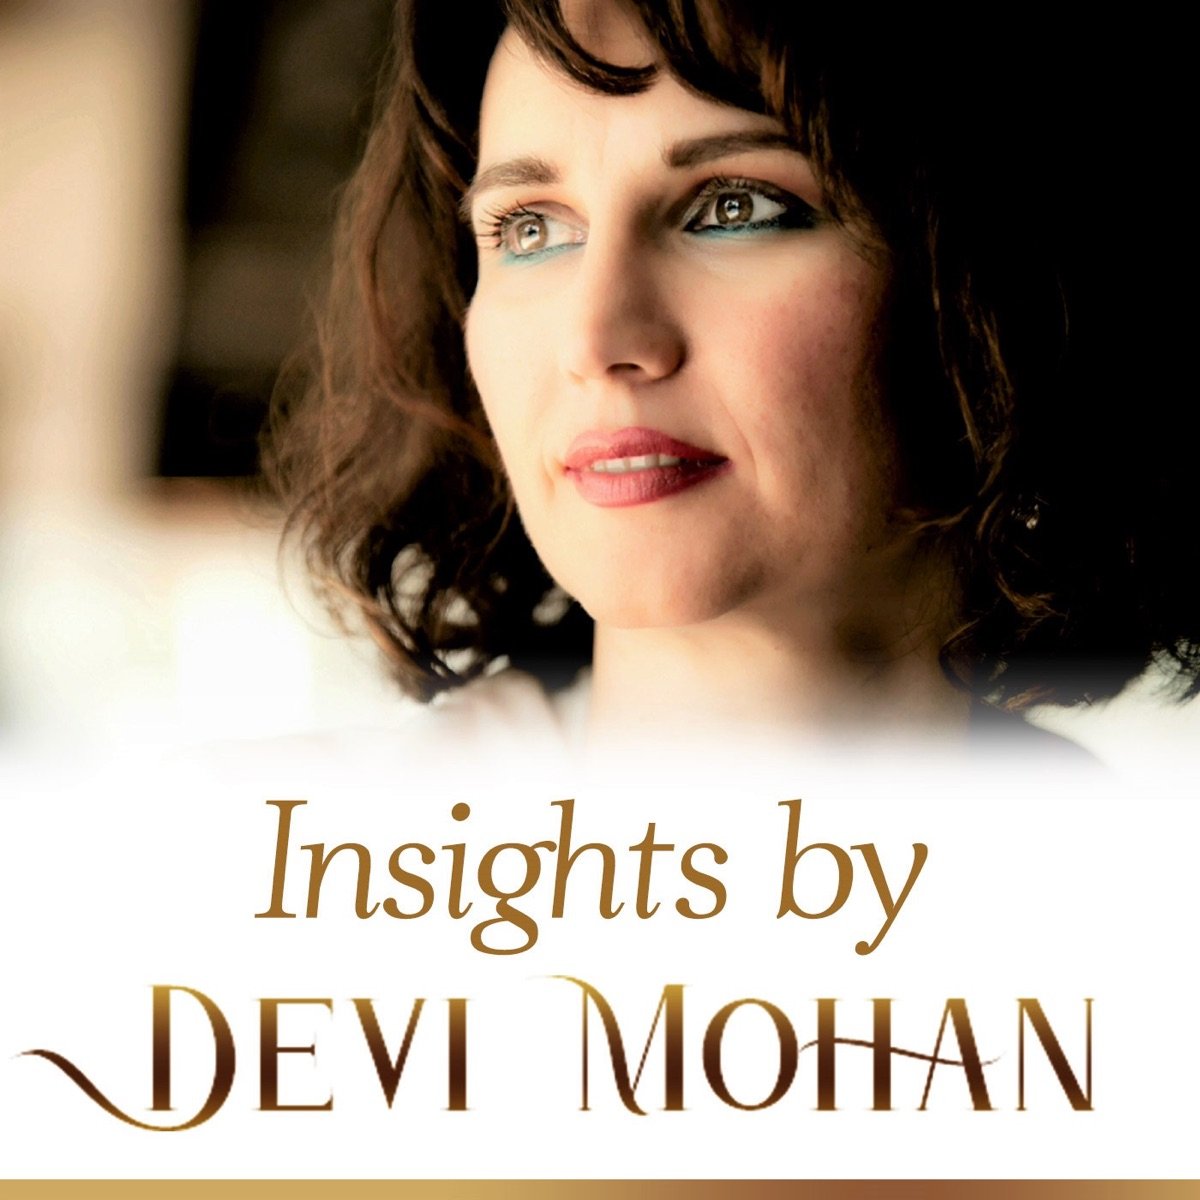 Insights by Devi Mohan